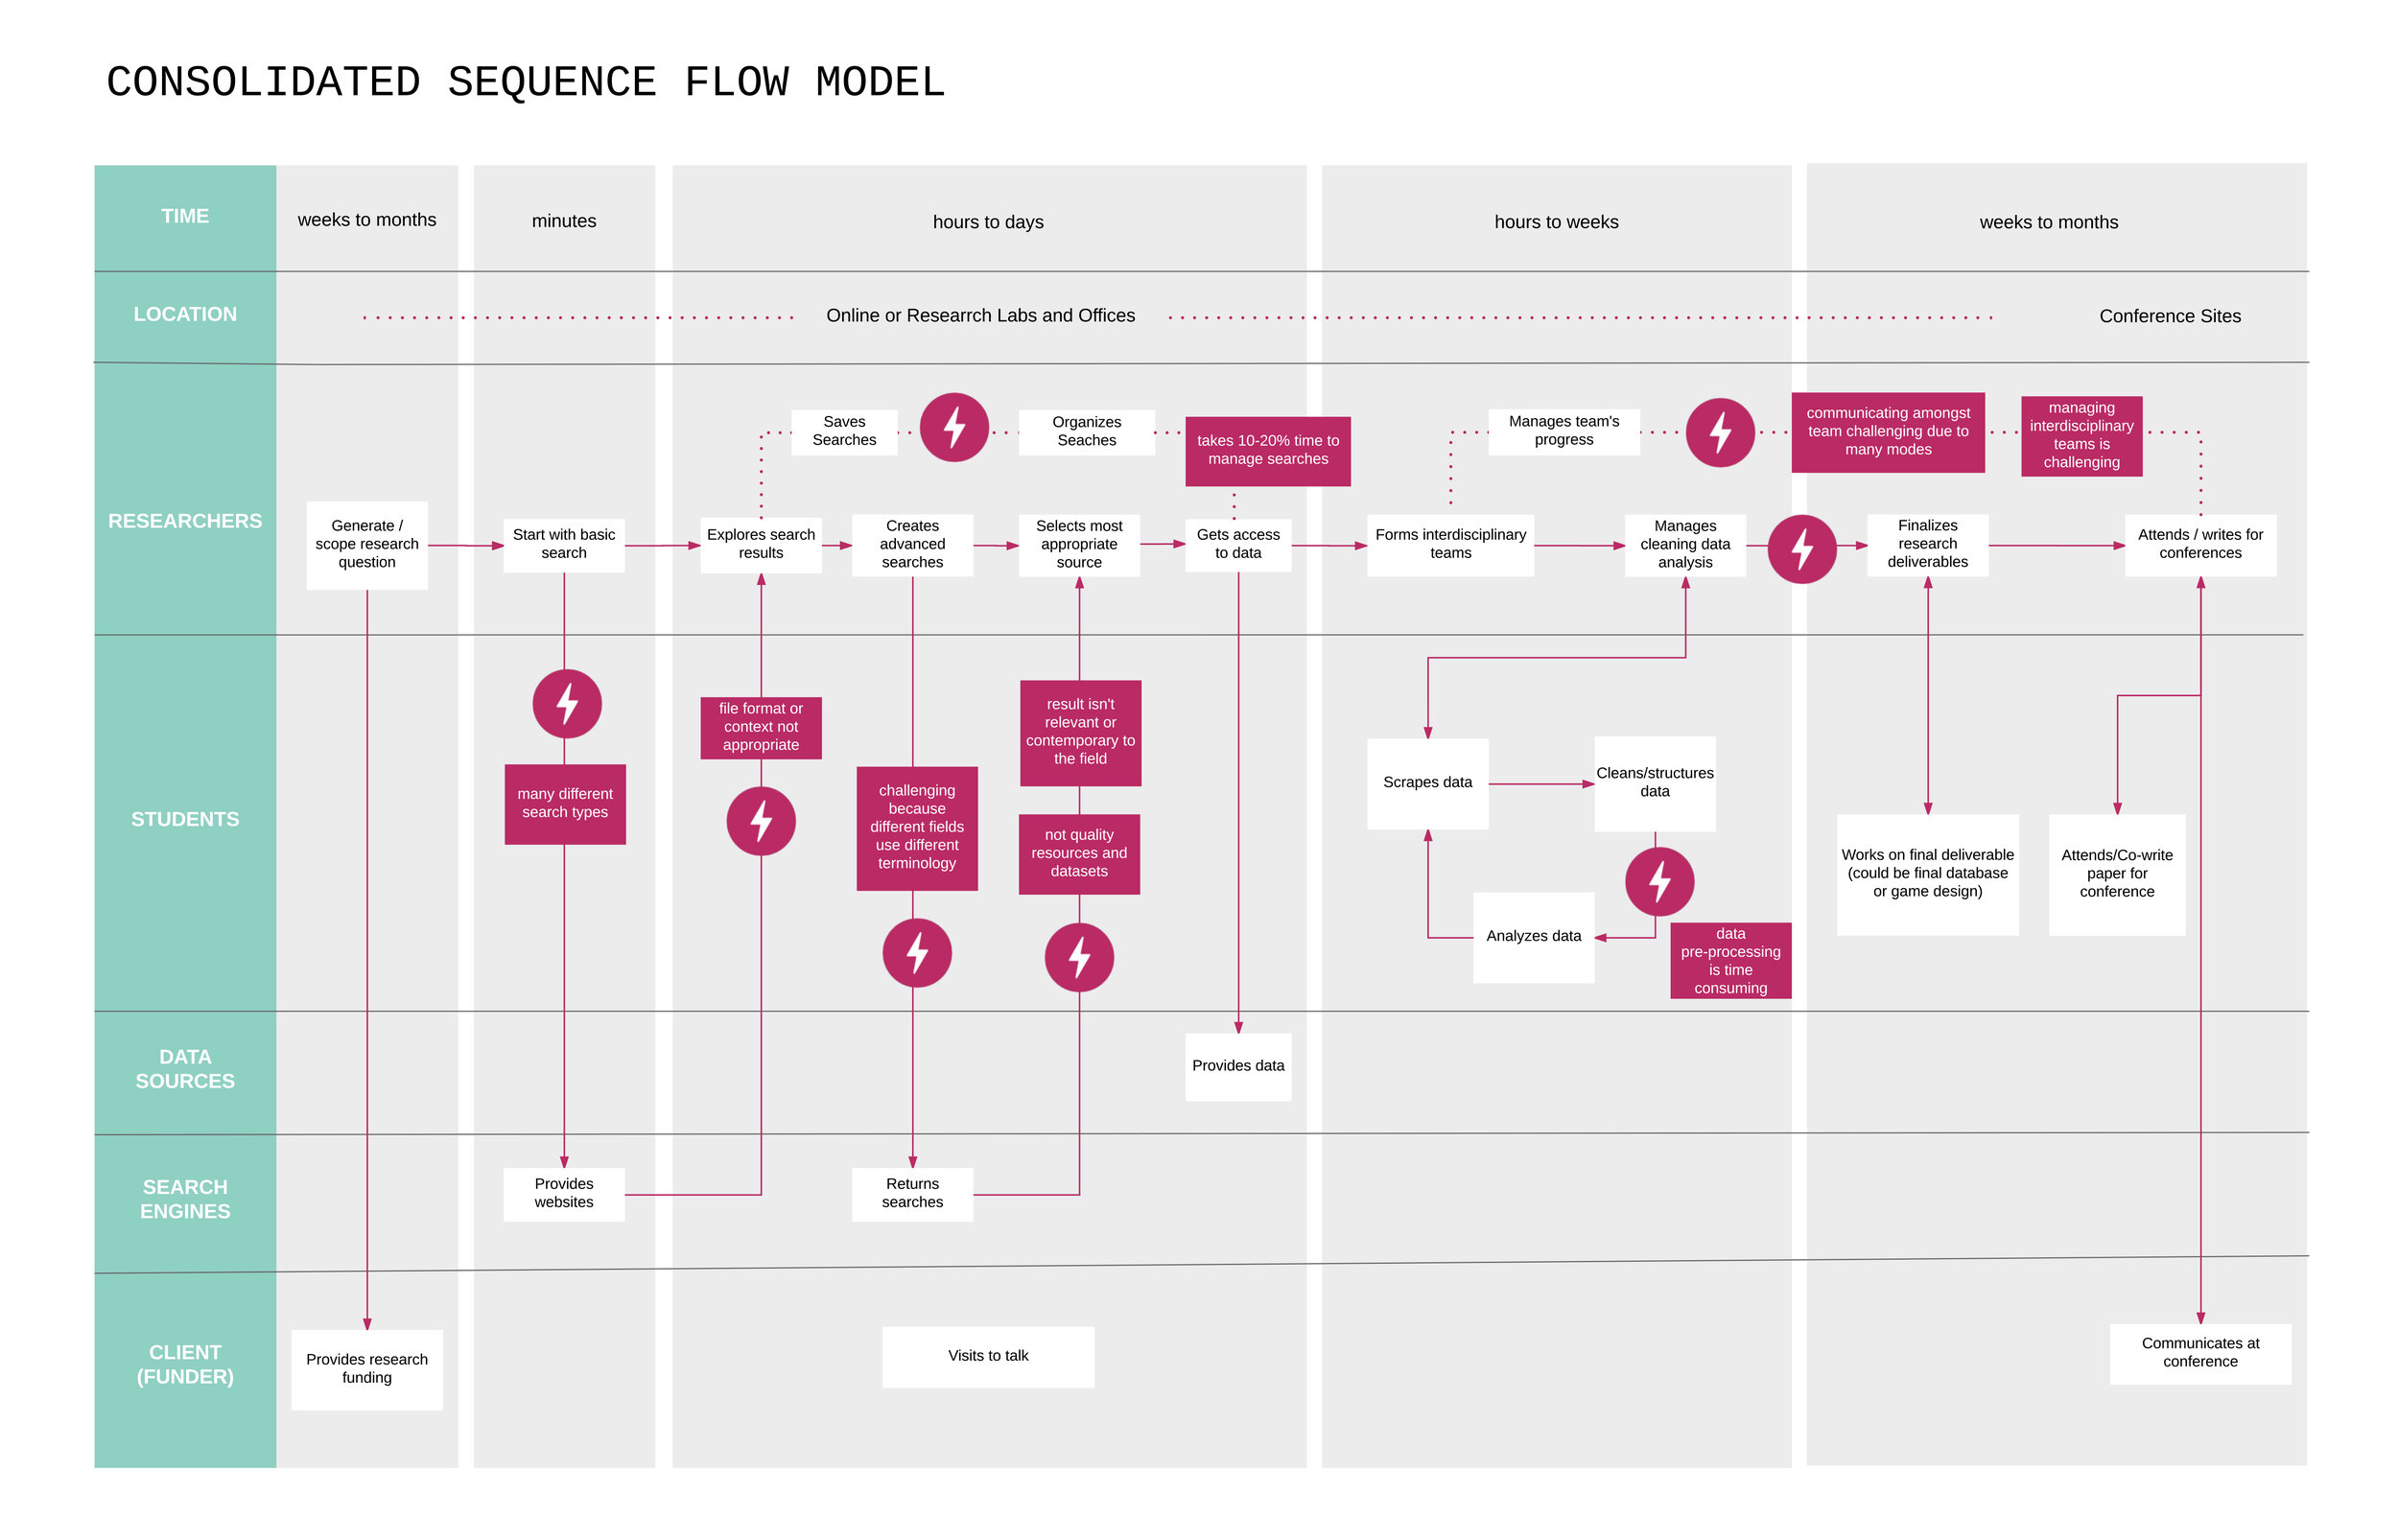 consolidated sequence flow.jpg